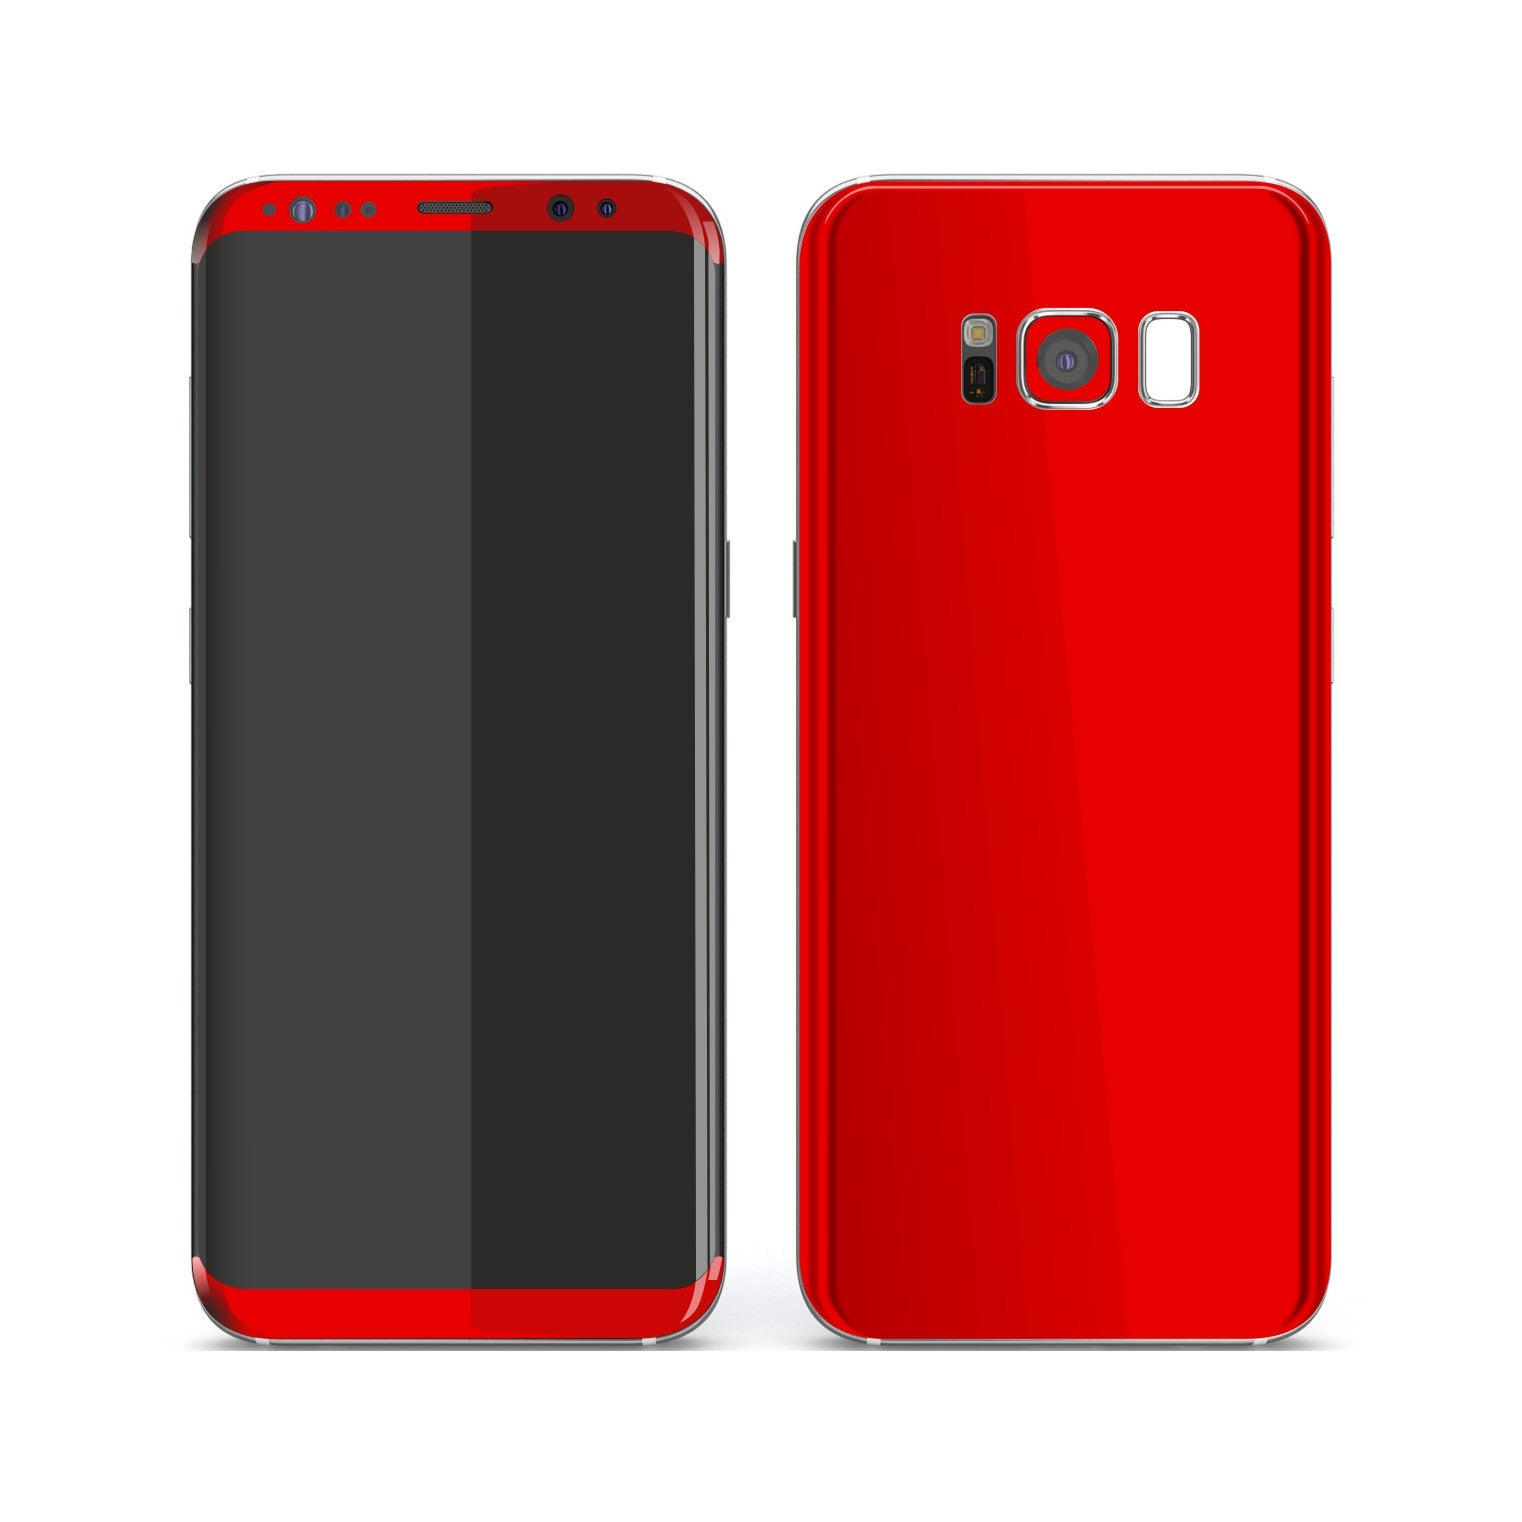 Samsung Galaxy S8 Bright Red Glossy Gloss Finish Skin, Decal, Wrap, Protector, Cover by EasySkinz | EasySkinz.com